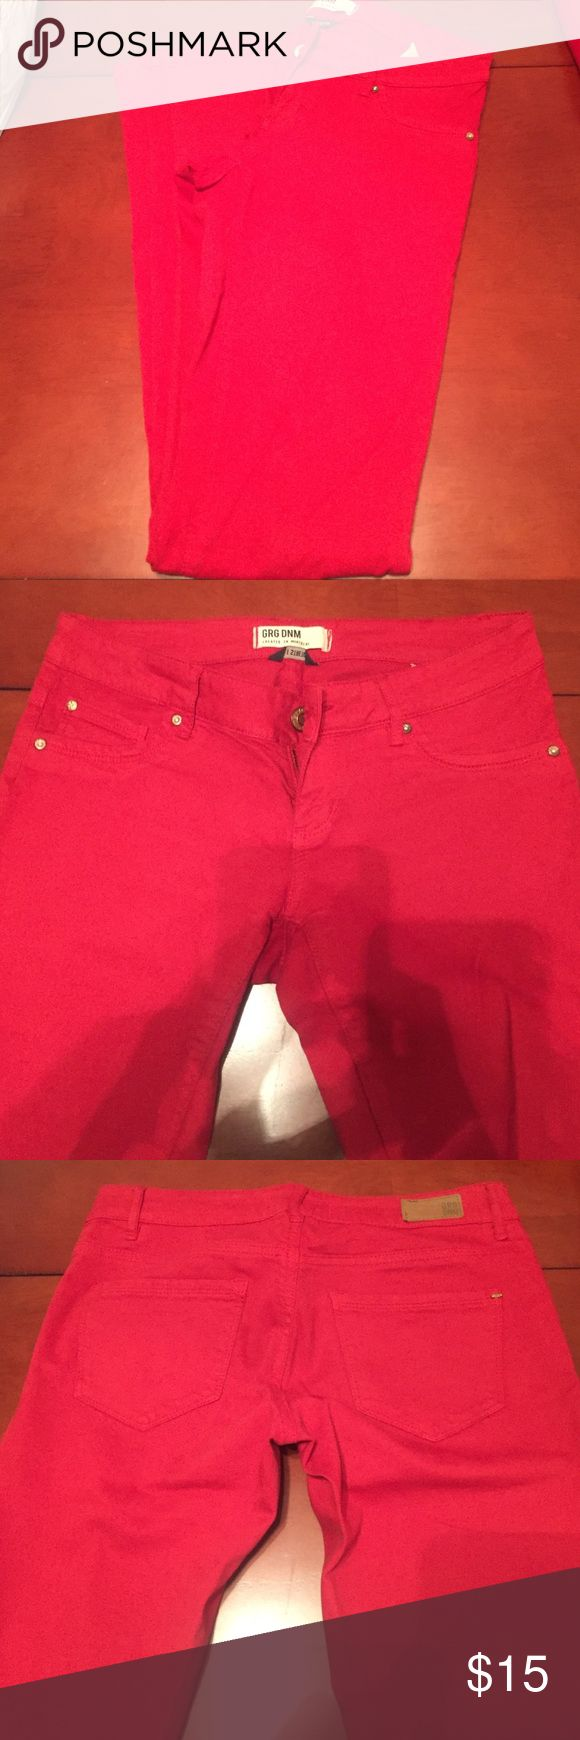 Red Skinny Jeans Stretchy material low rise skinny fit cotton and spandex only worn once size 1, best fits sizes 2-4. garage denim Garage Jeans Skinny